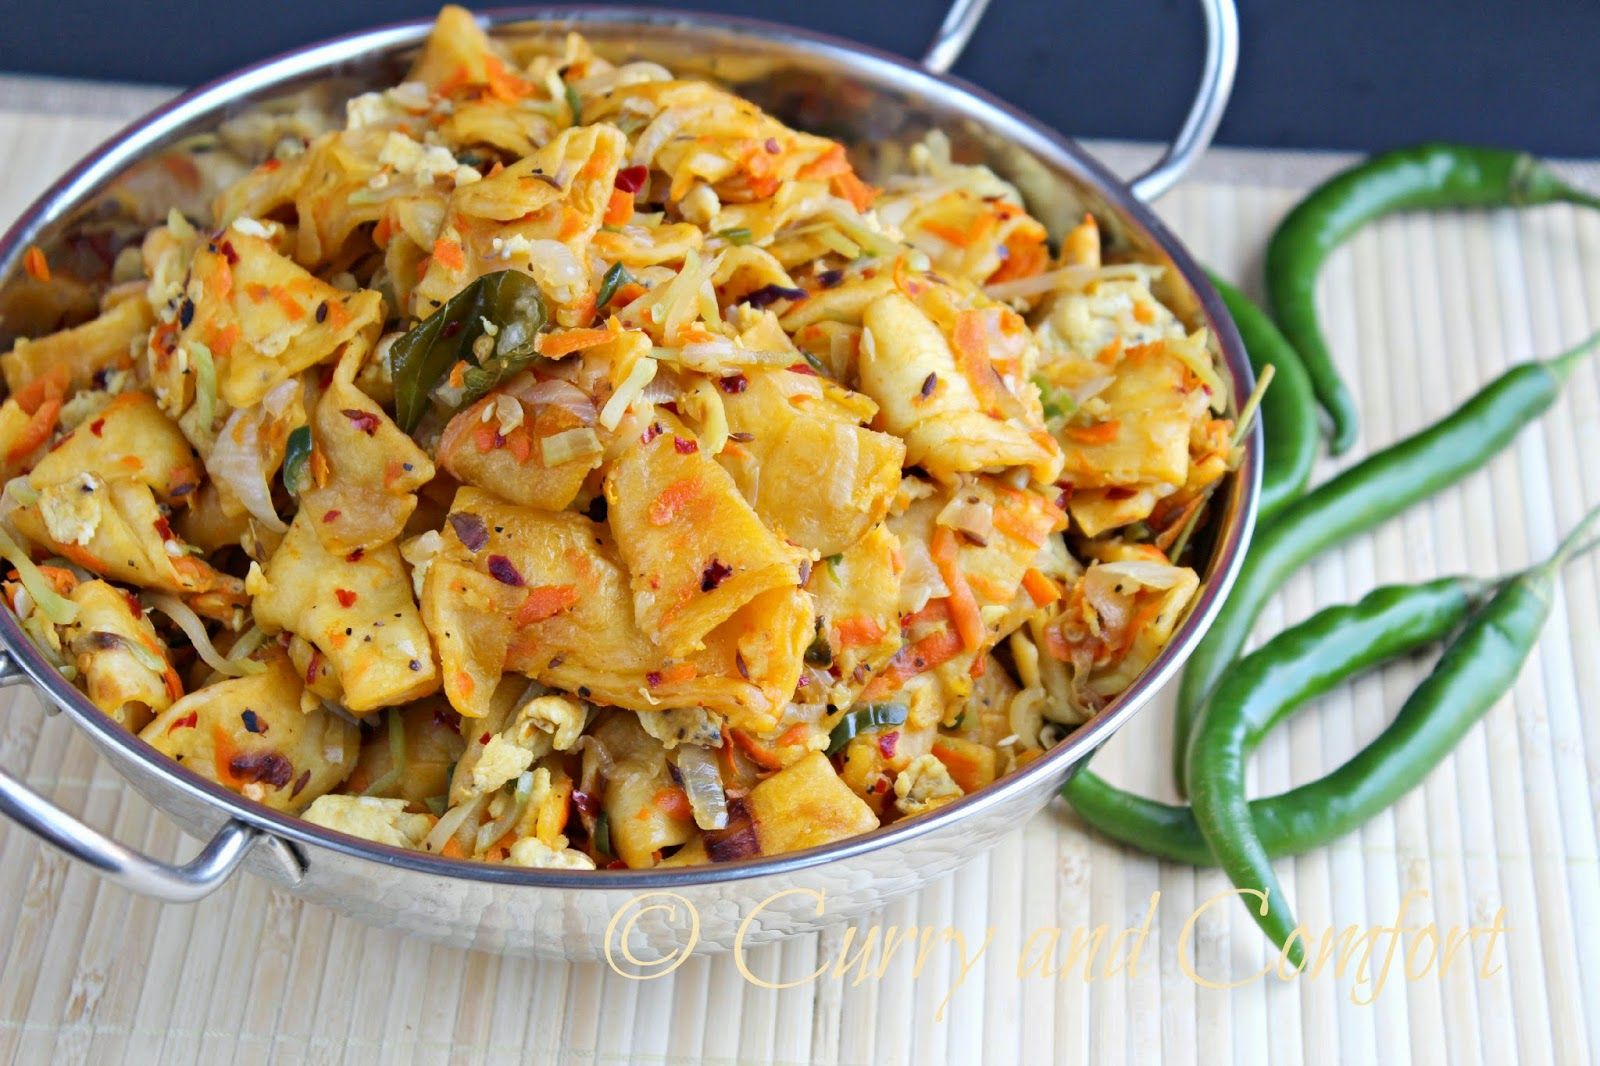 Stir fried tortillas and vegetables sri lankan kottu roti fake out stir fried tortillas and vegetables sri lankan kottu roti fake out spicy dishesveggie dishesveggie recipesvegetarian recipescurry recipescooking forumfinder Gallery